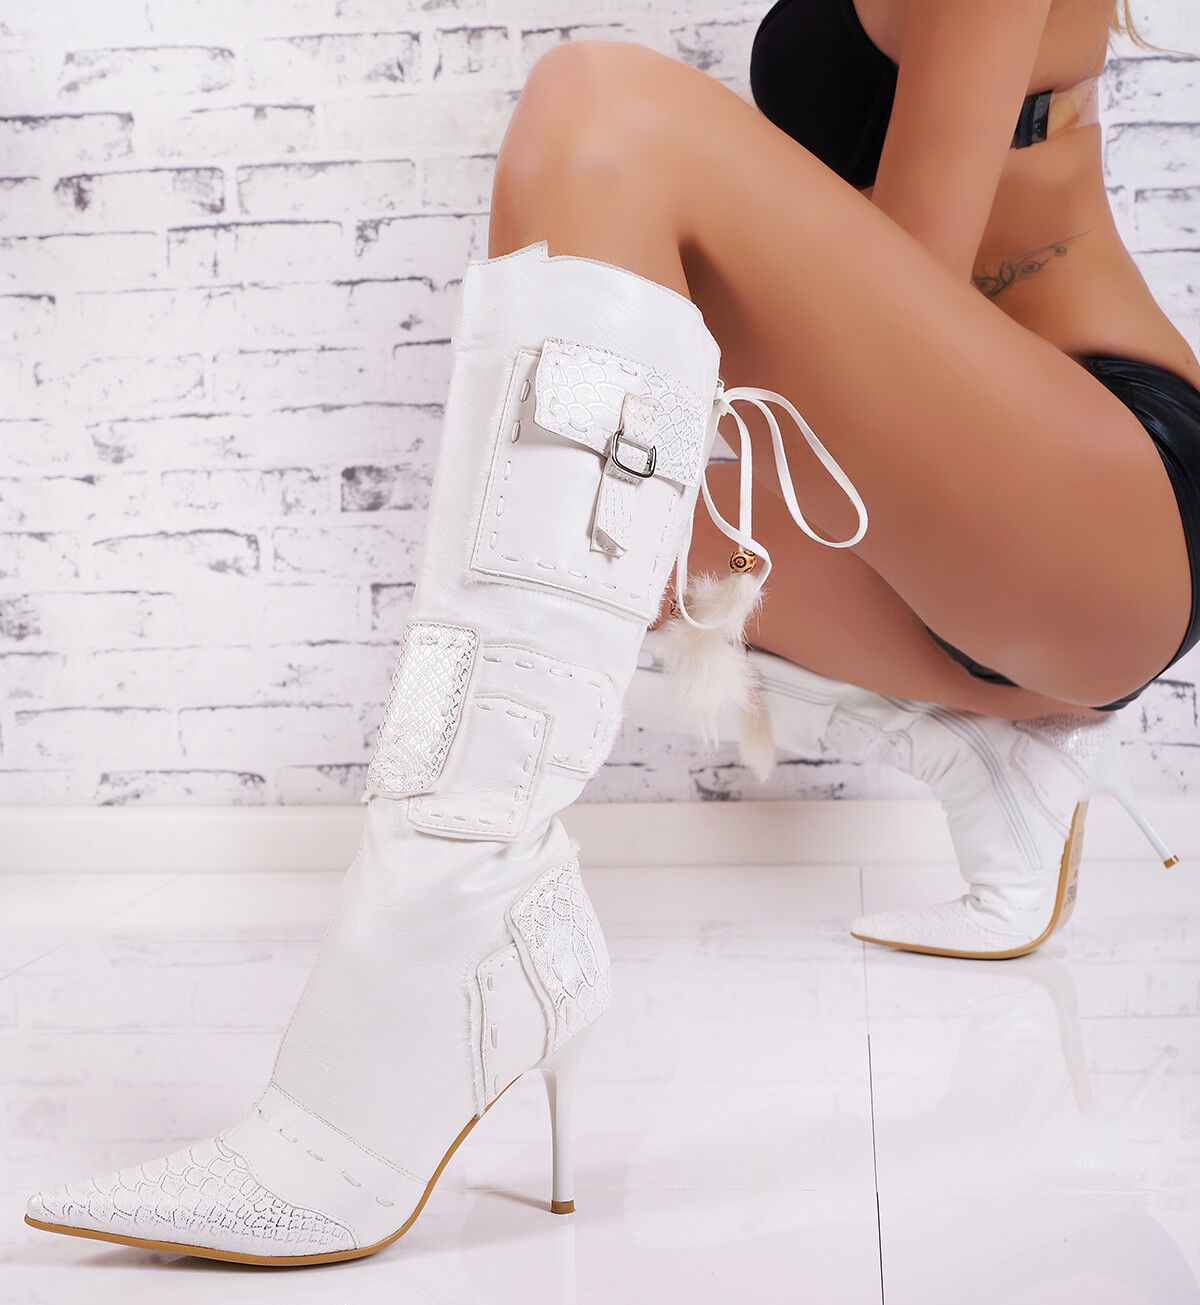 Sexy Luxury Boots High Heels Ankle Boots shoes Court shoes Crocodile White 36-41